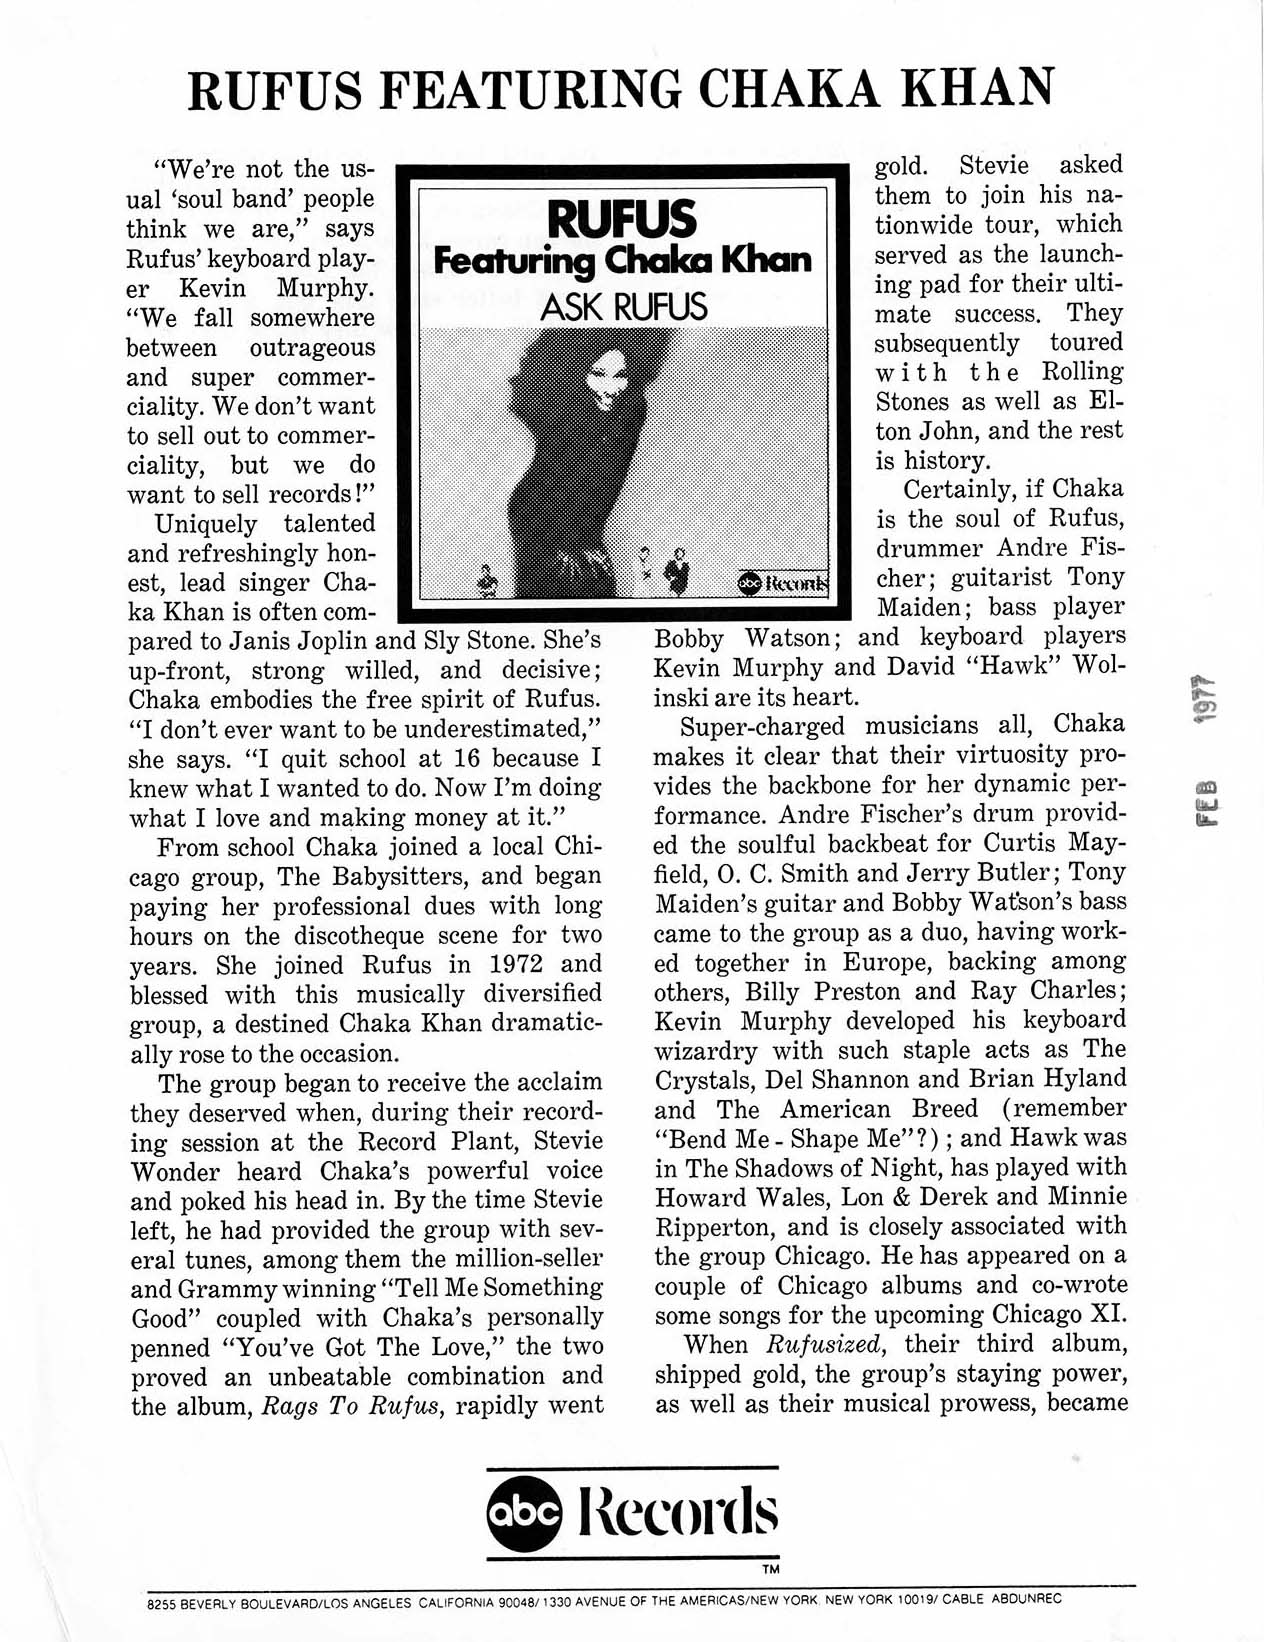 Biographical information on Rufus featuring Chaka Khan